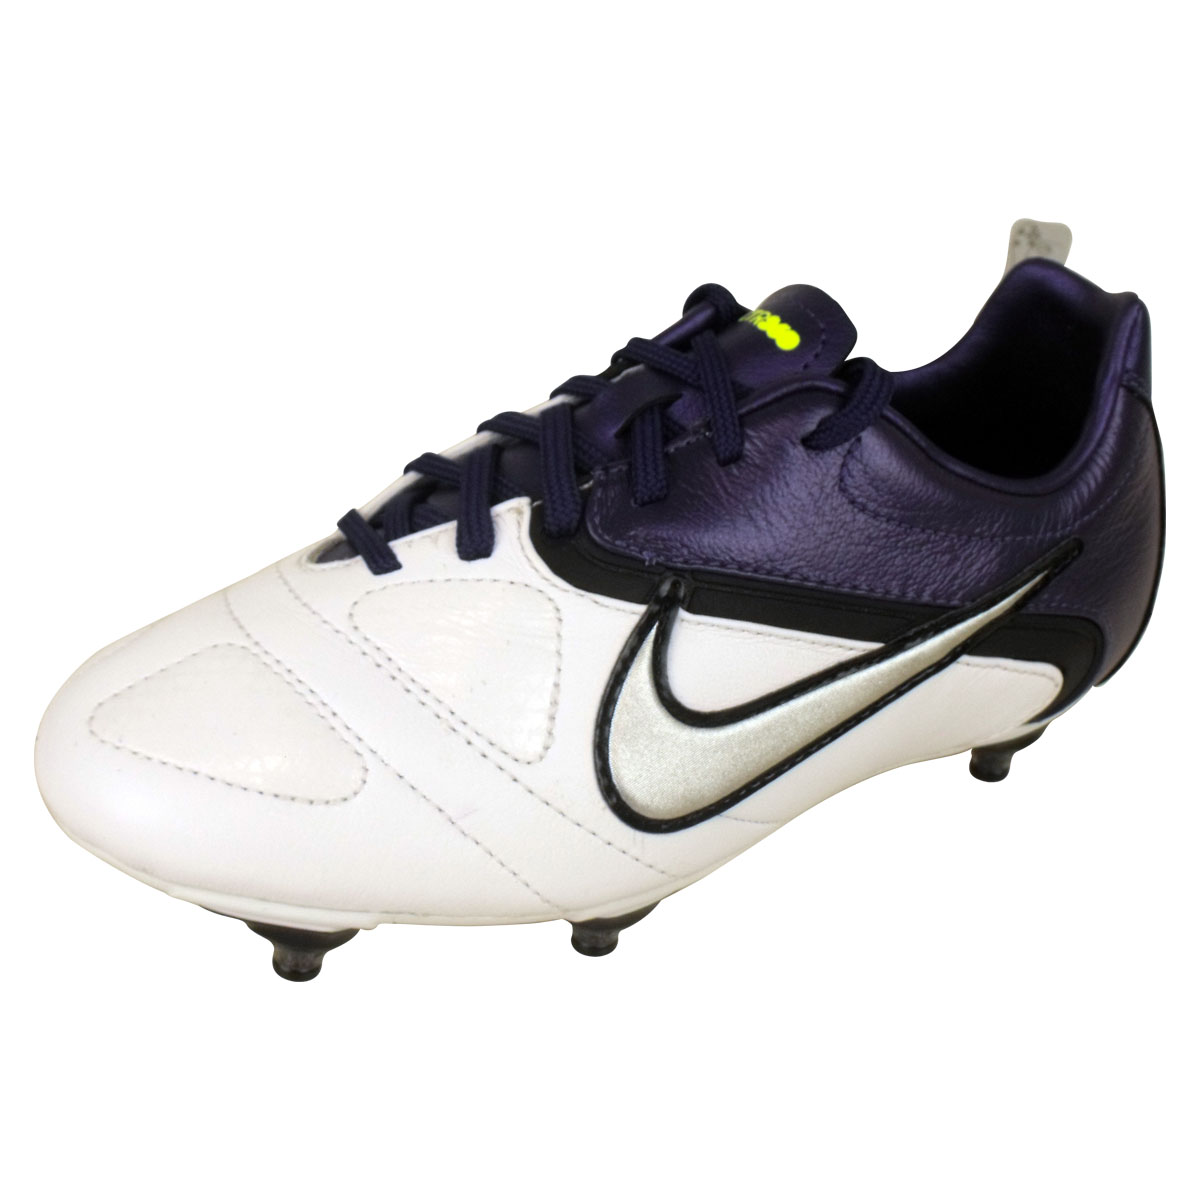 Boys-Nike-CTR360-Libretto-II-SG-Soft-Ground-Football-Boots-Junior-Sizes-Kids-JR